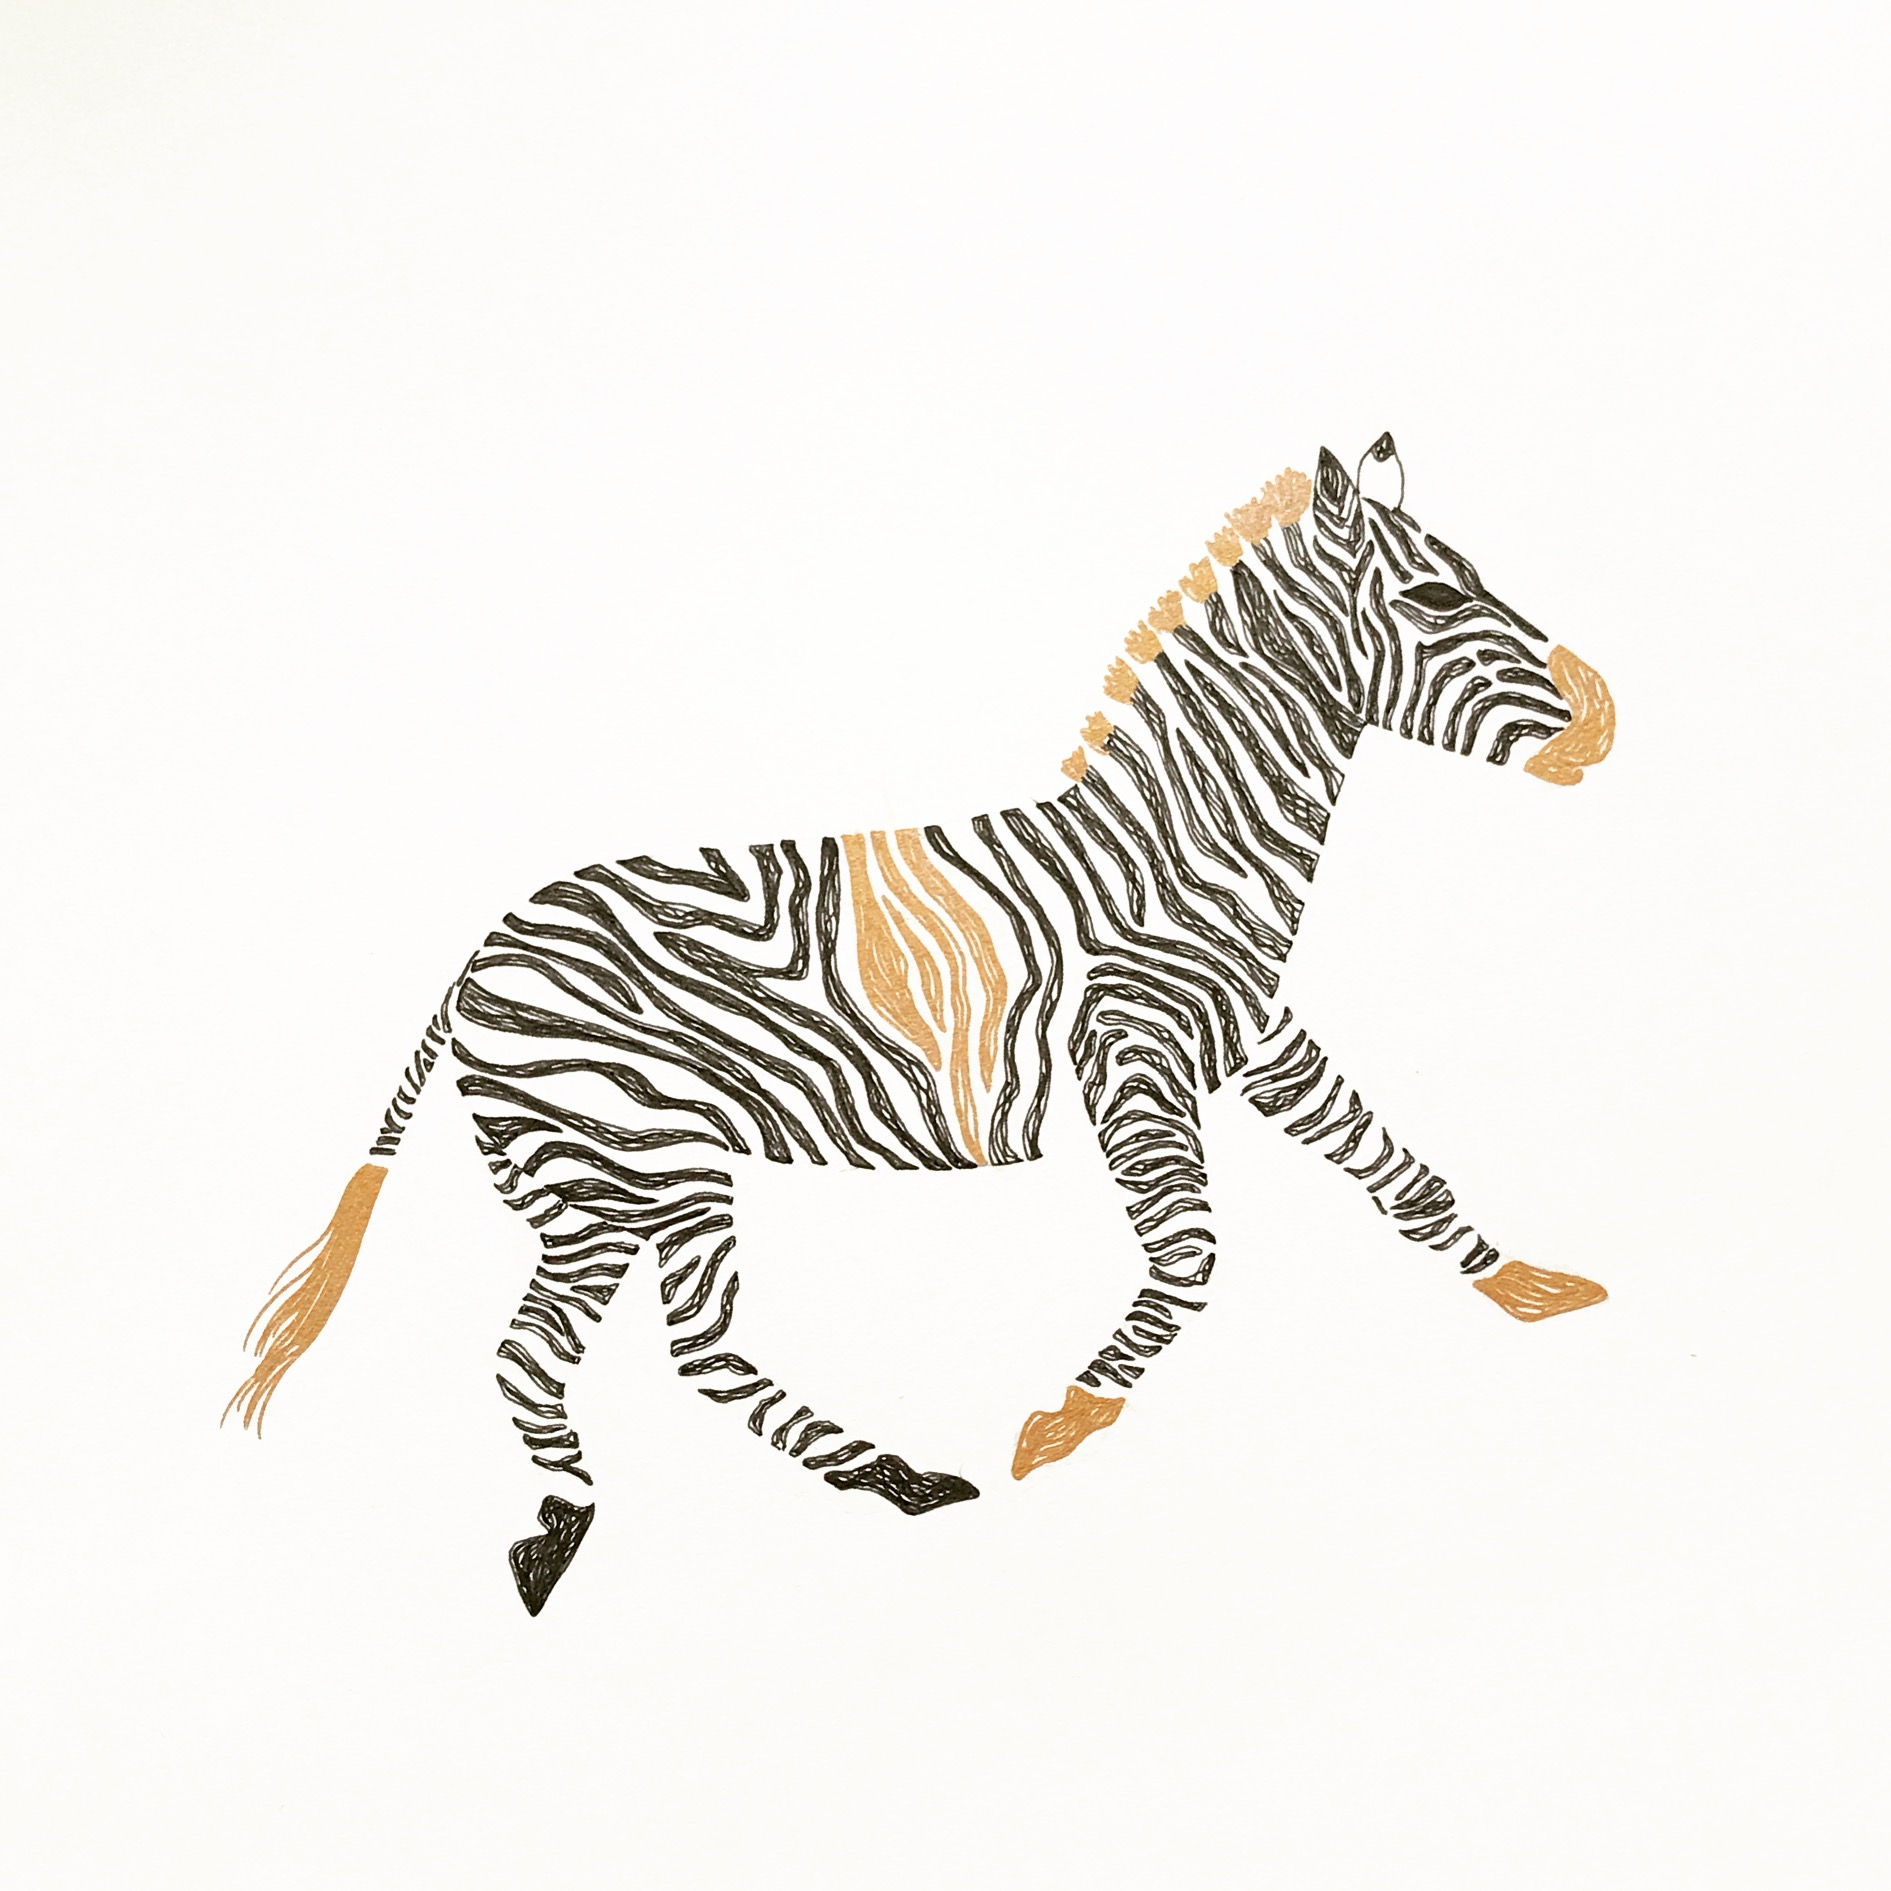 Zebra Illustration | 2018